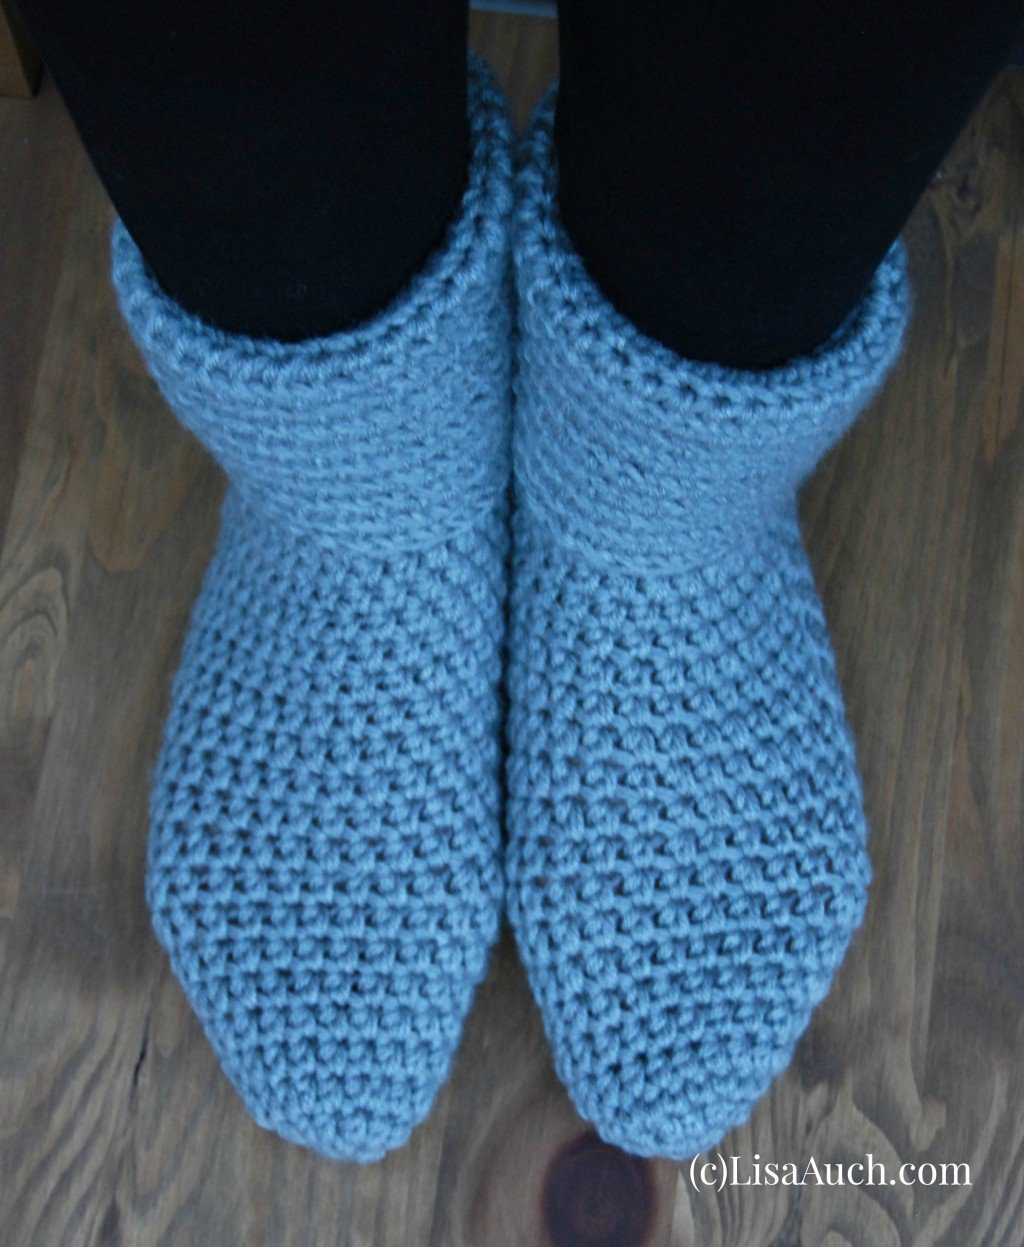 Free Slipper Patterns Awesome Free Crochet socks & Easy Crochet Slipper Patterns Ideal Of Luxury 50 Ideas Free Slipper Patterns